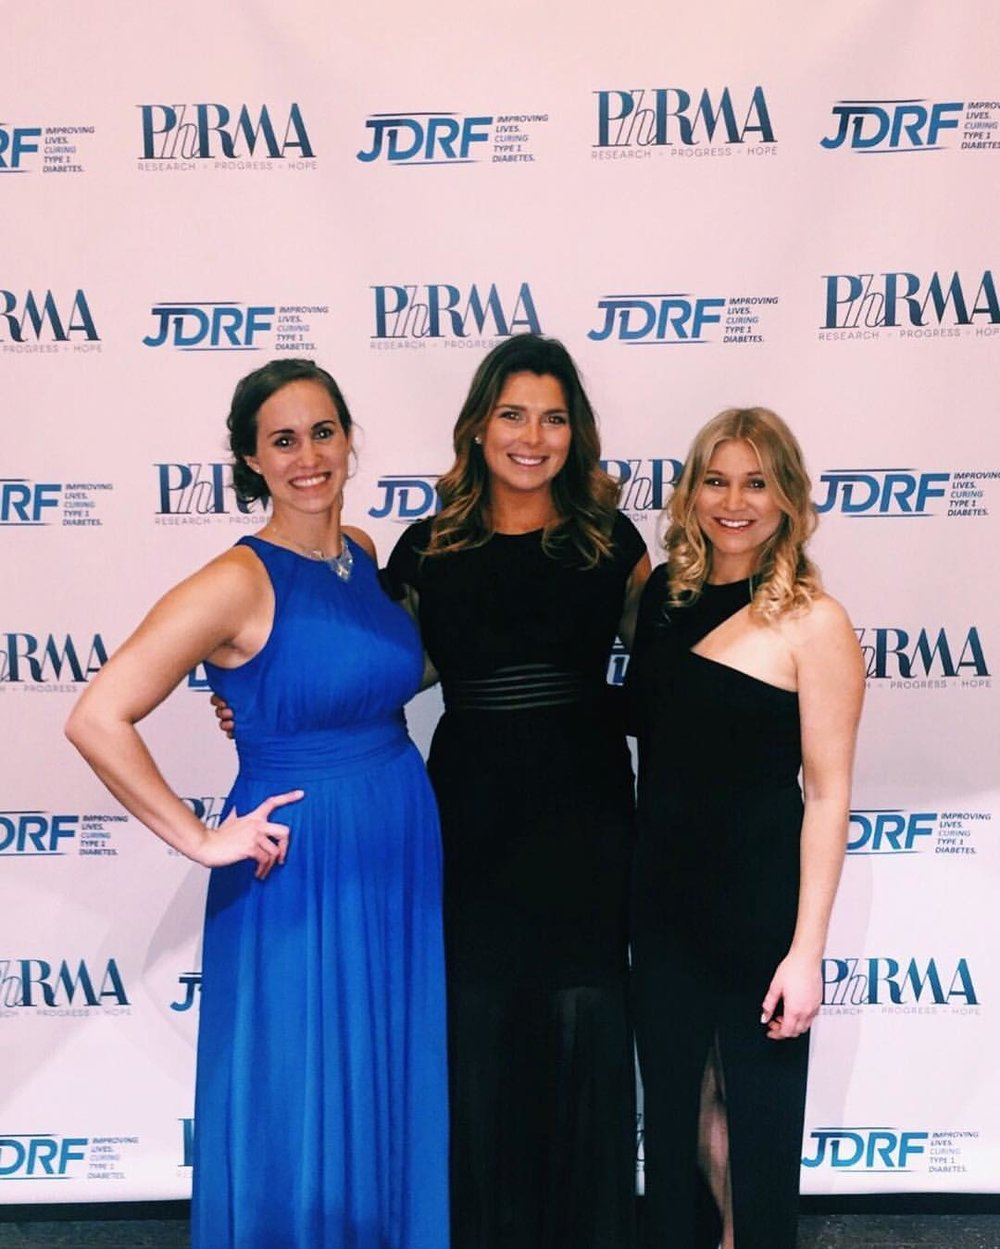 Alex helps execute many JDRF events, which included the 2016 JDRF Night of Hope Gala in Washington, D.C.